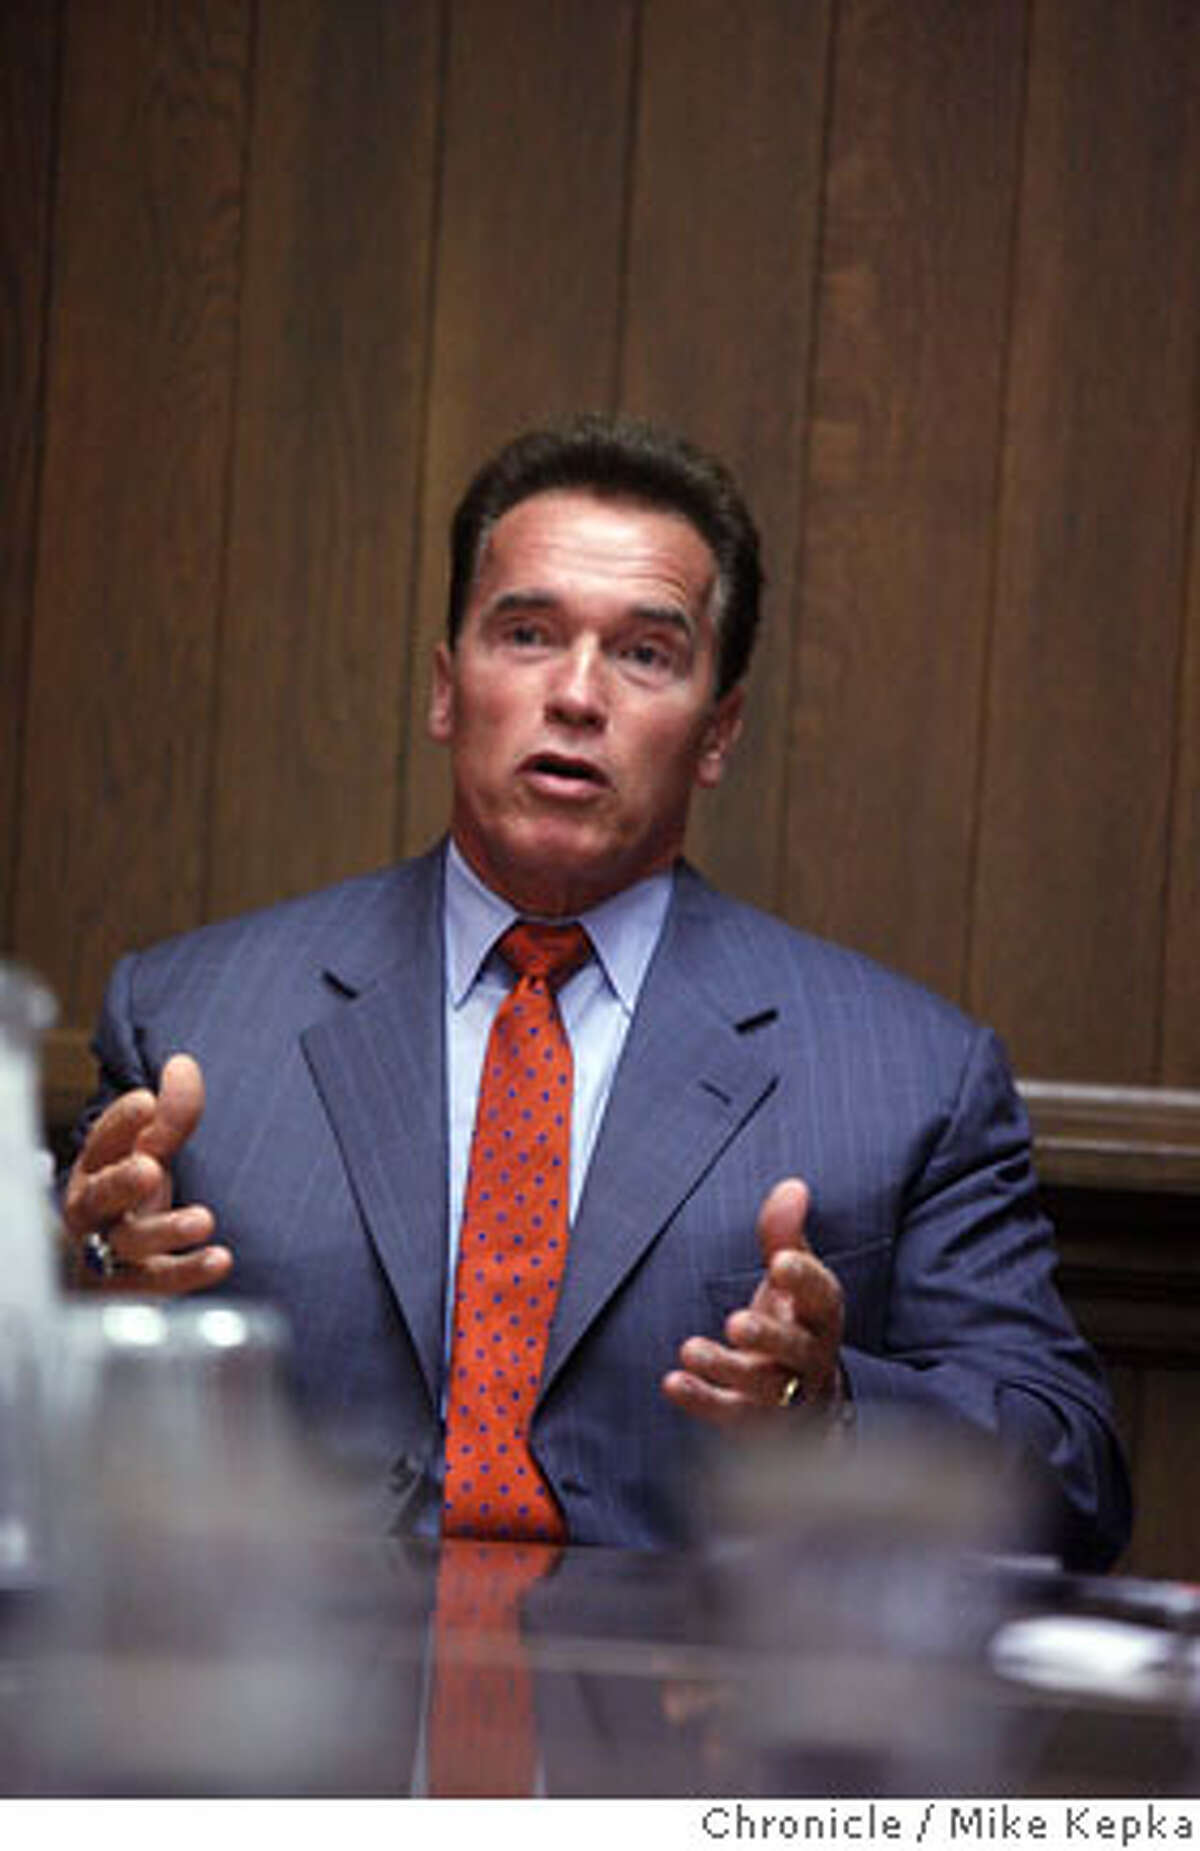 Governor Arnold Schwarzenegger meet with the San Francisco Chronicle Editorial board in the Chronicle building on Photo on 10/11/06. Mike Kepka / The Chronicle